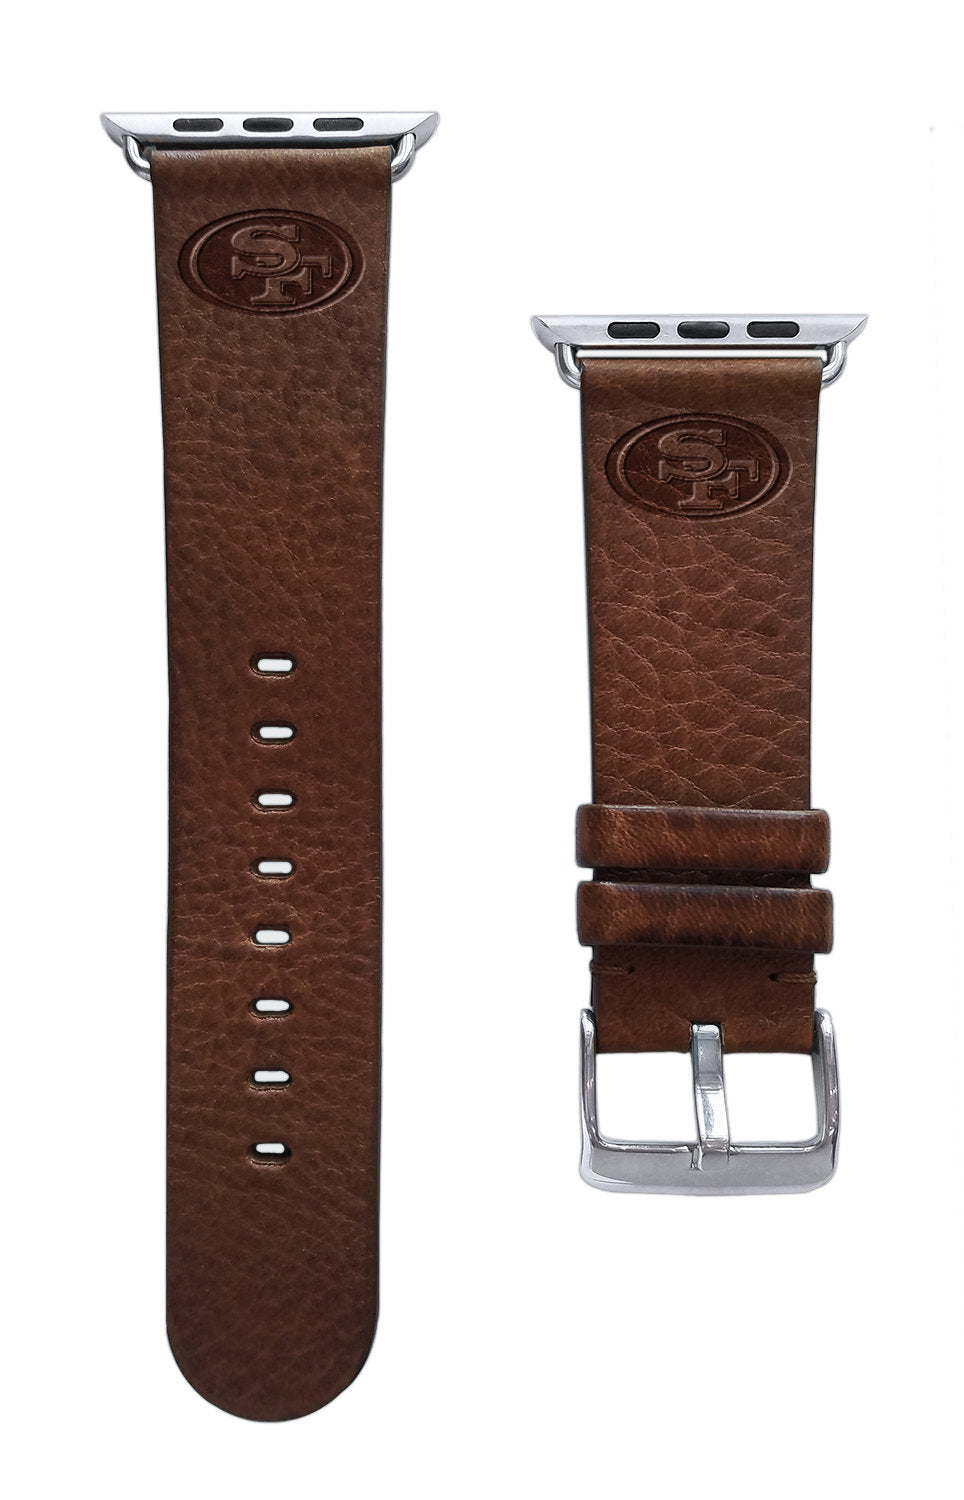 San Francisco 49ers Leather Apple Watch Band